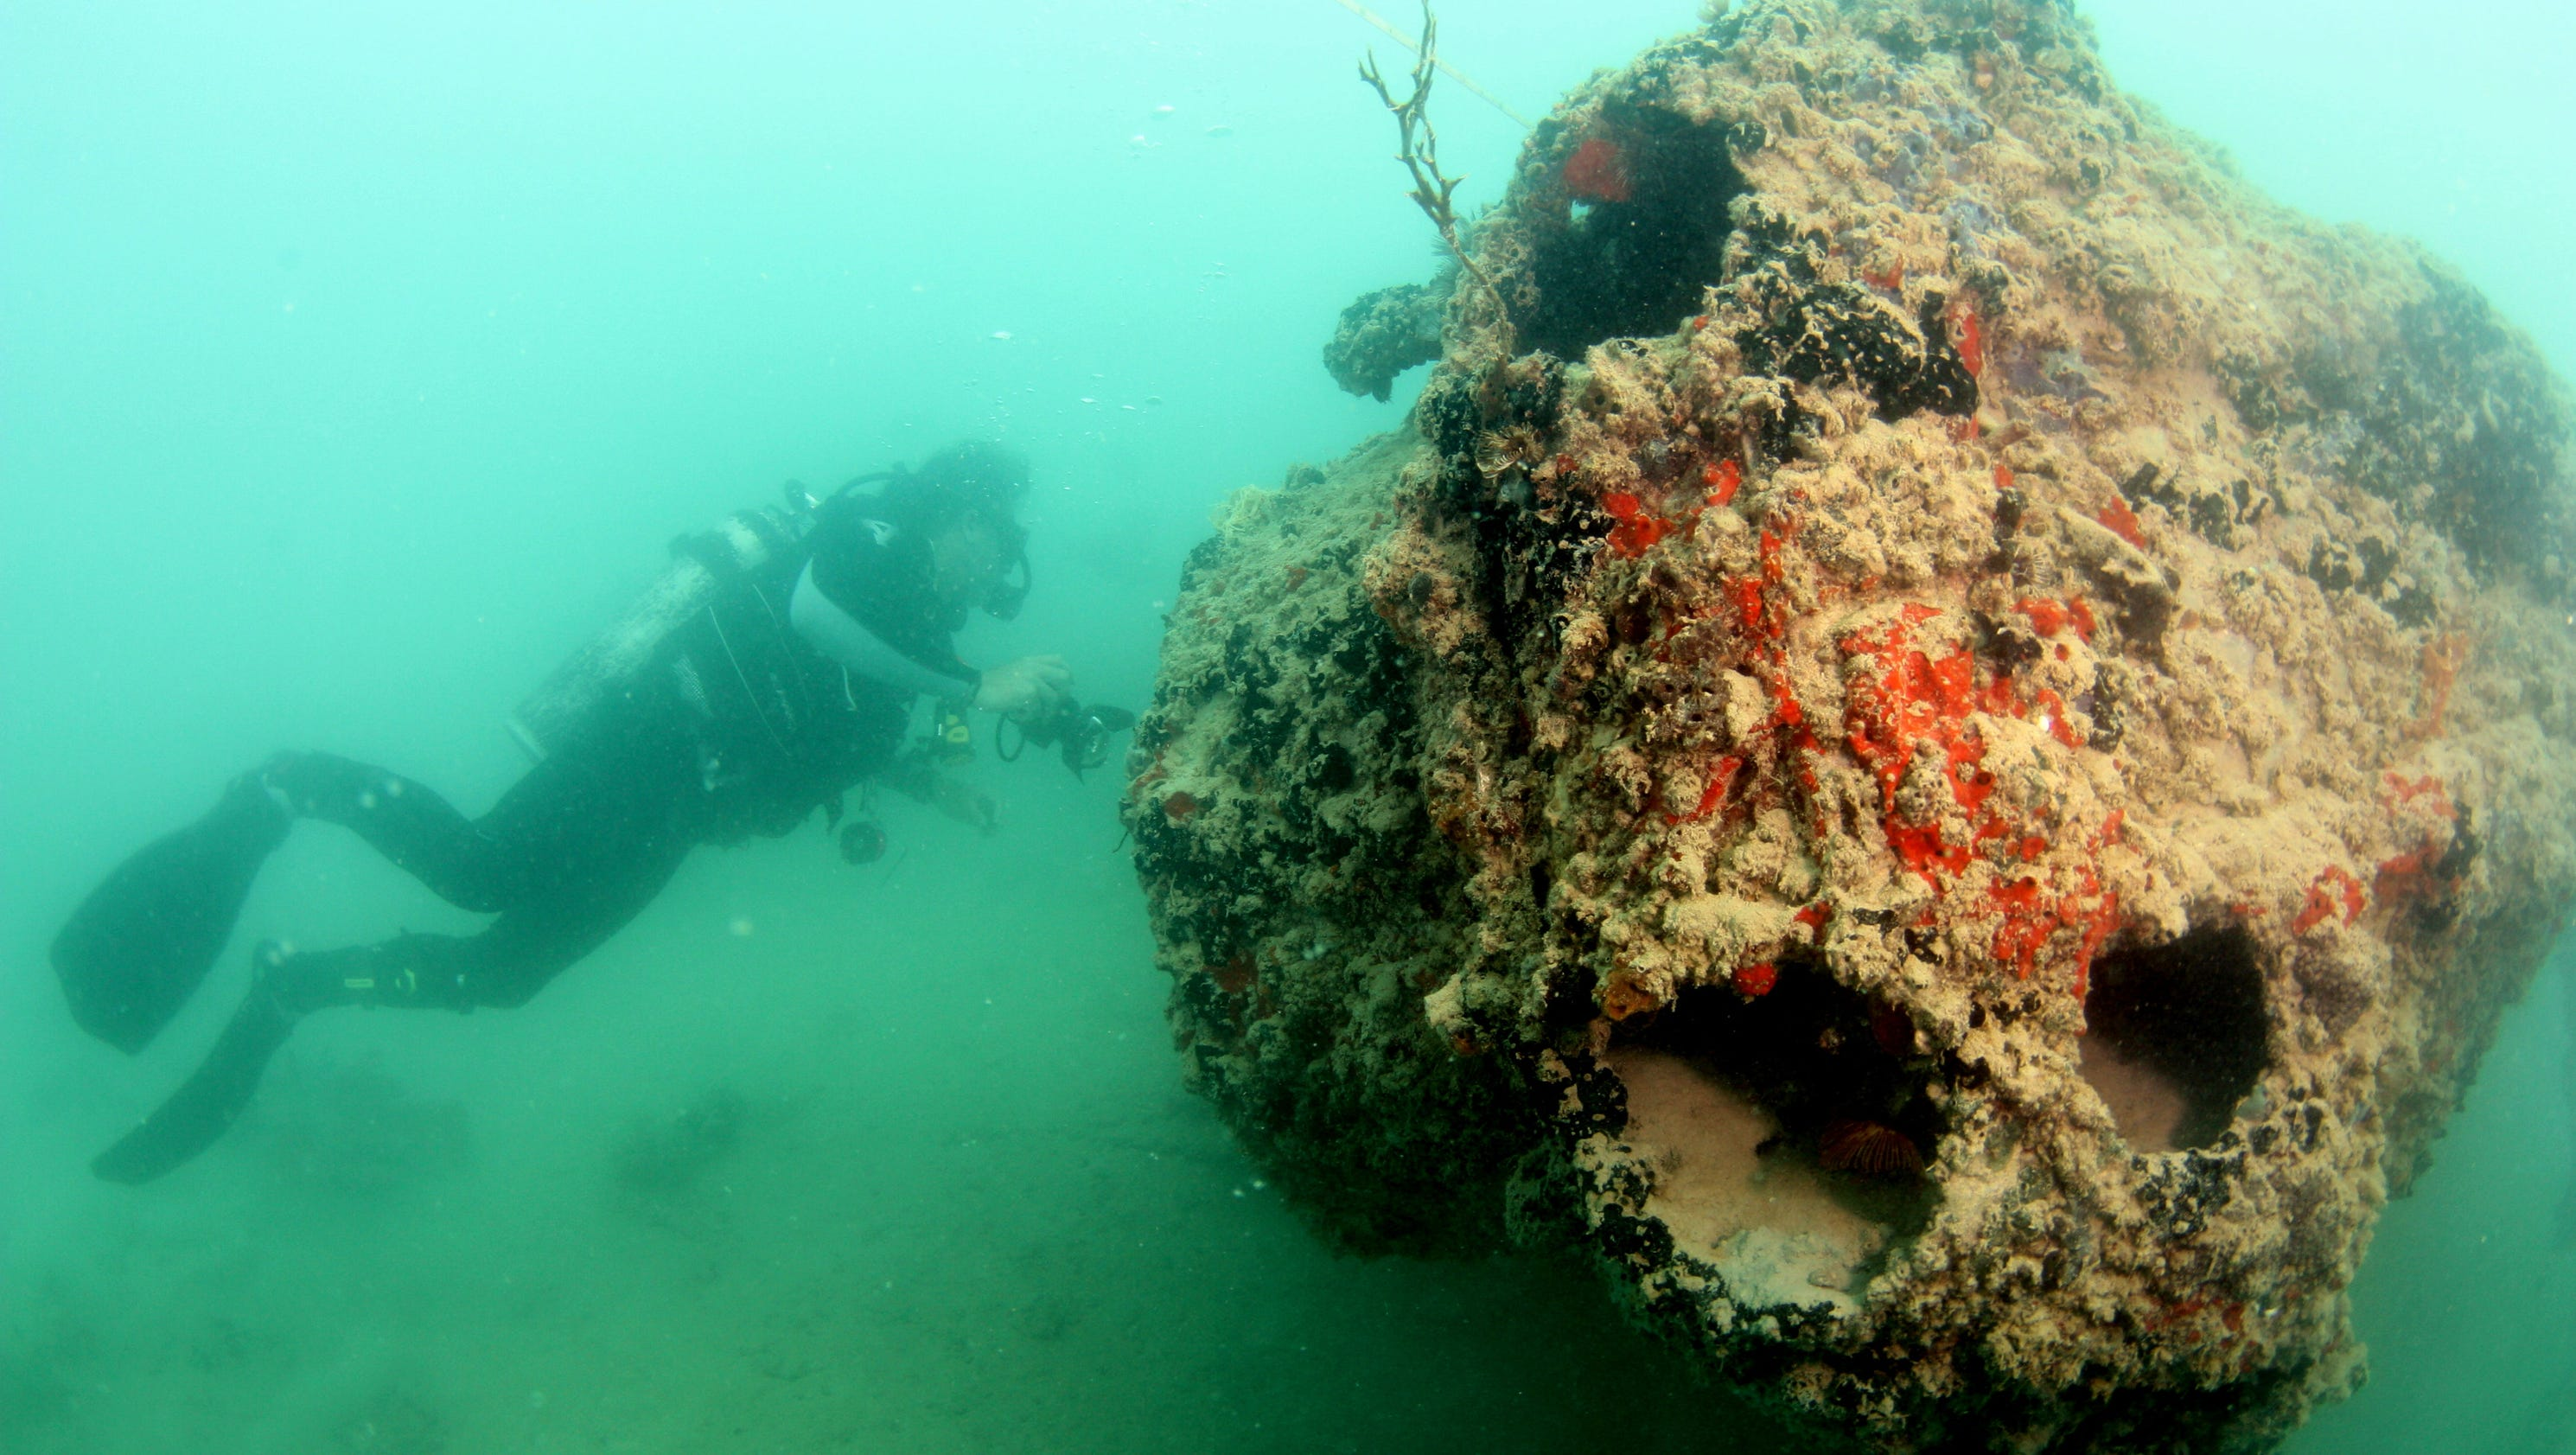 Images: Seaplane that sank in Pearl Harbor attack